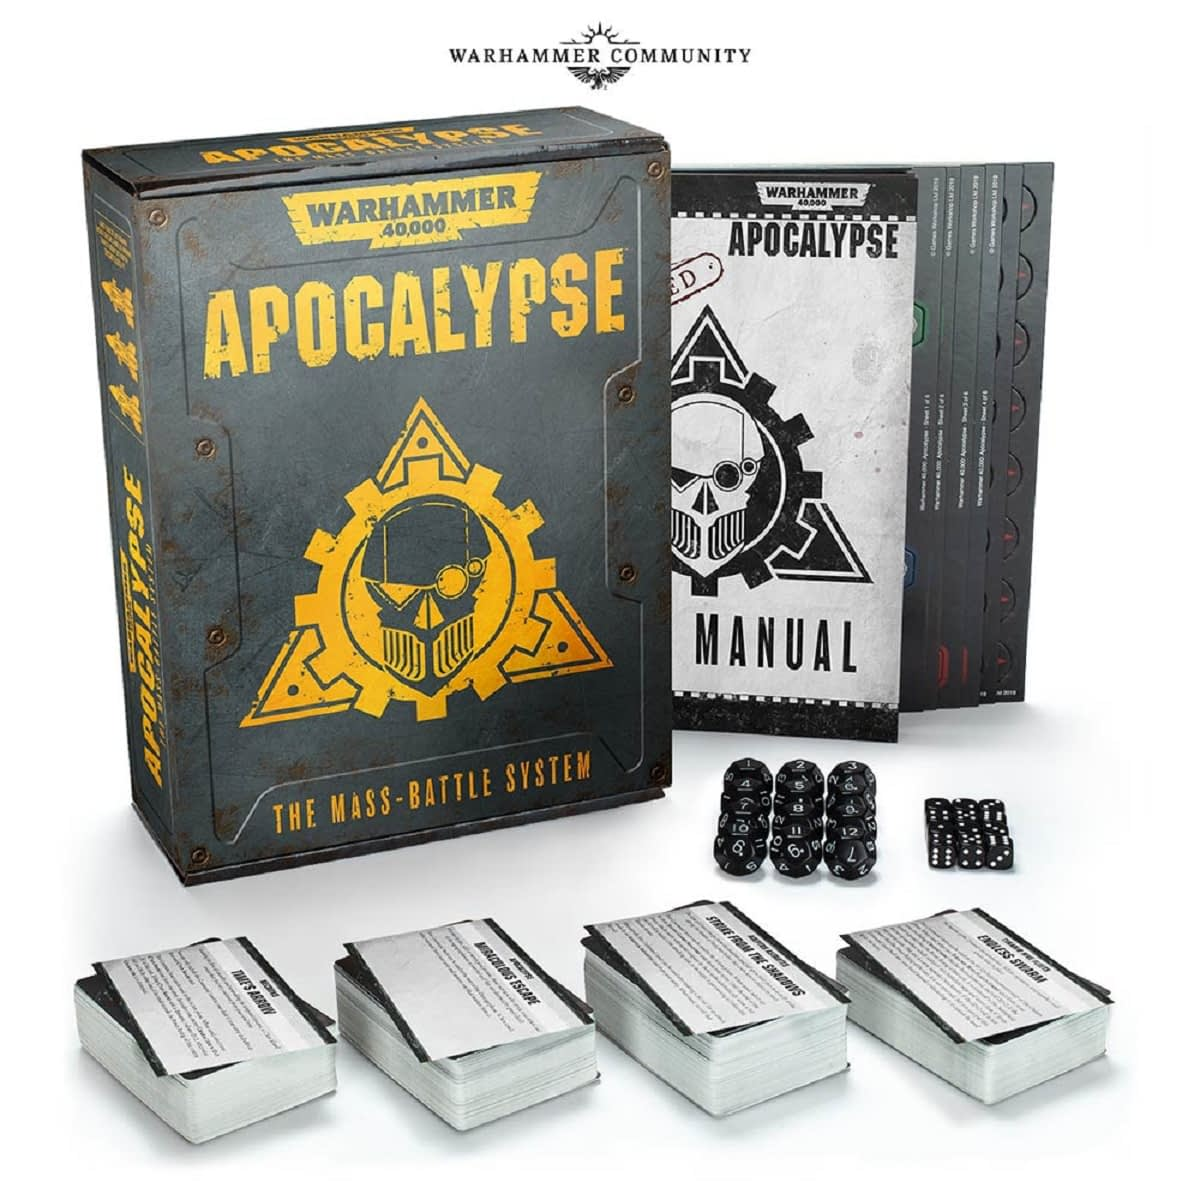 Warhammer 40,000: Apocalypse Returning to a Table Near You